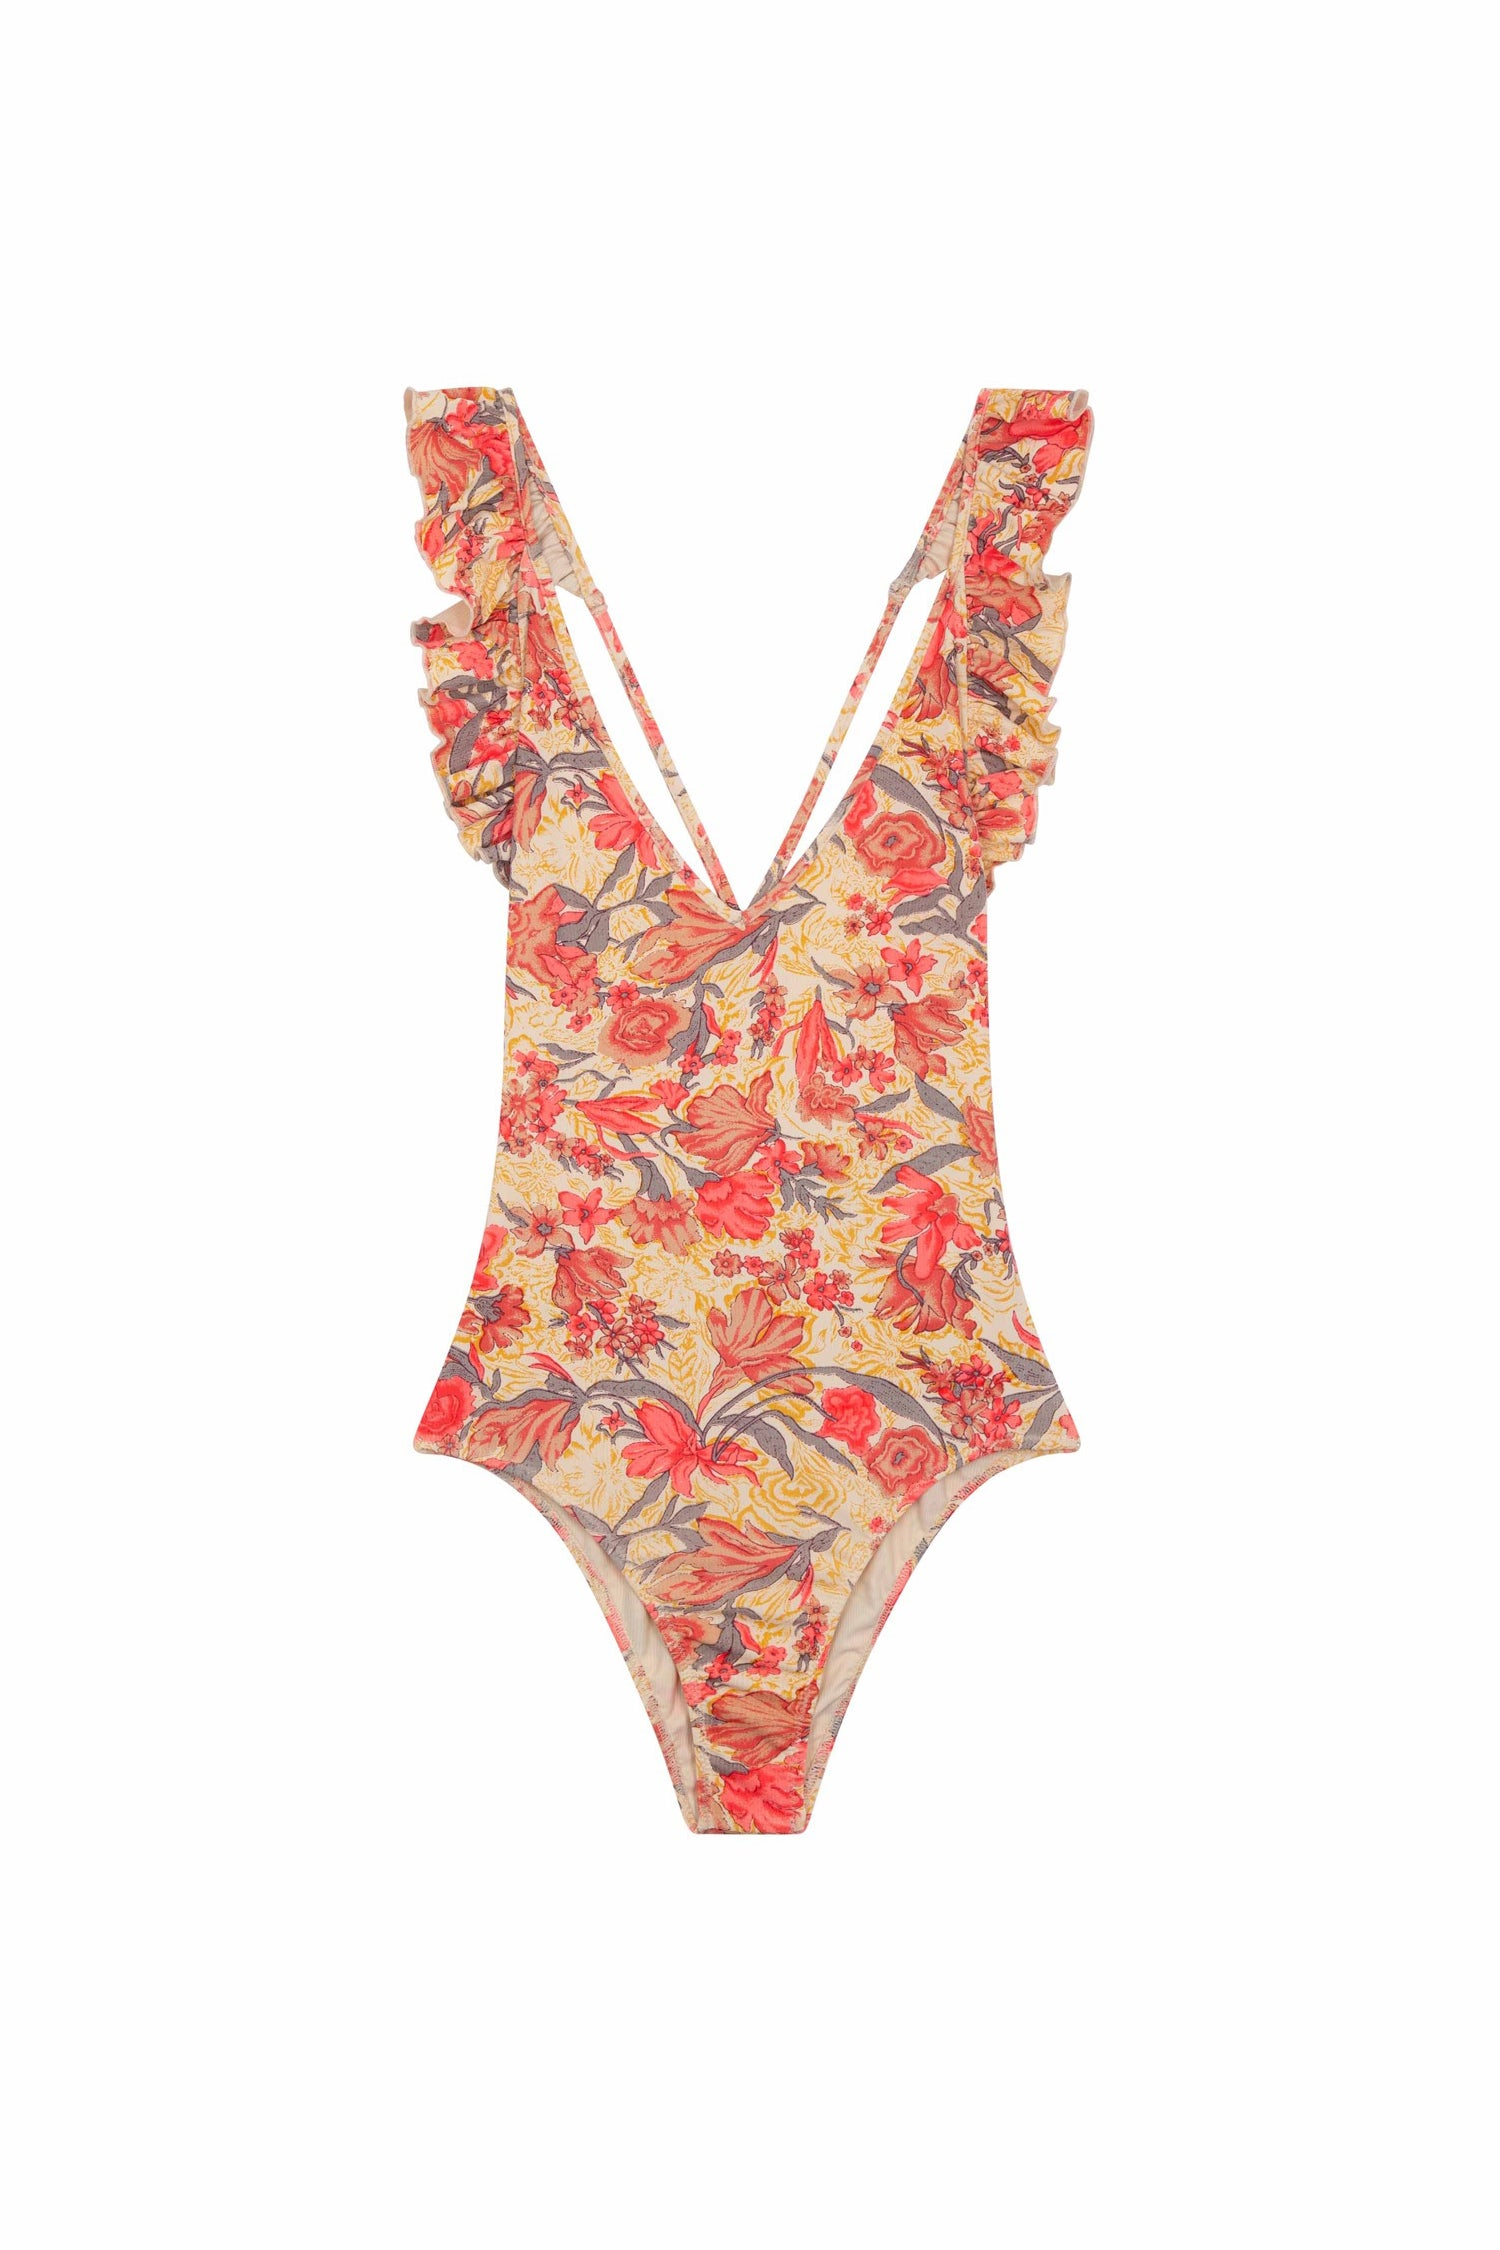 Bathing Suit Reva Pink Flowers - Louise Misha